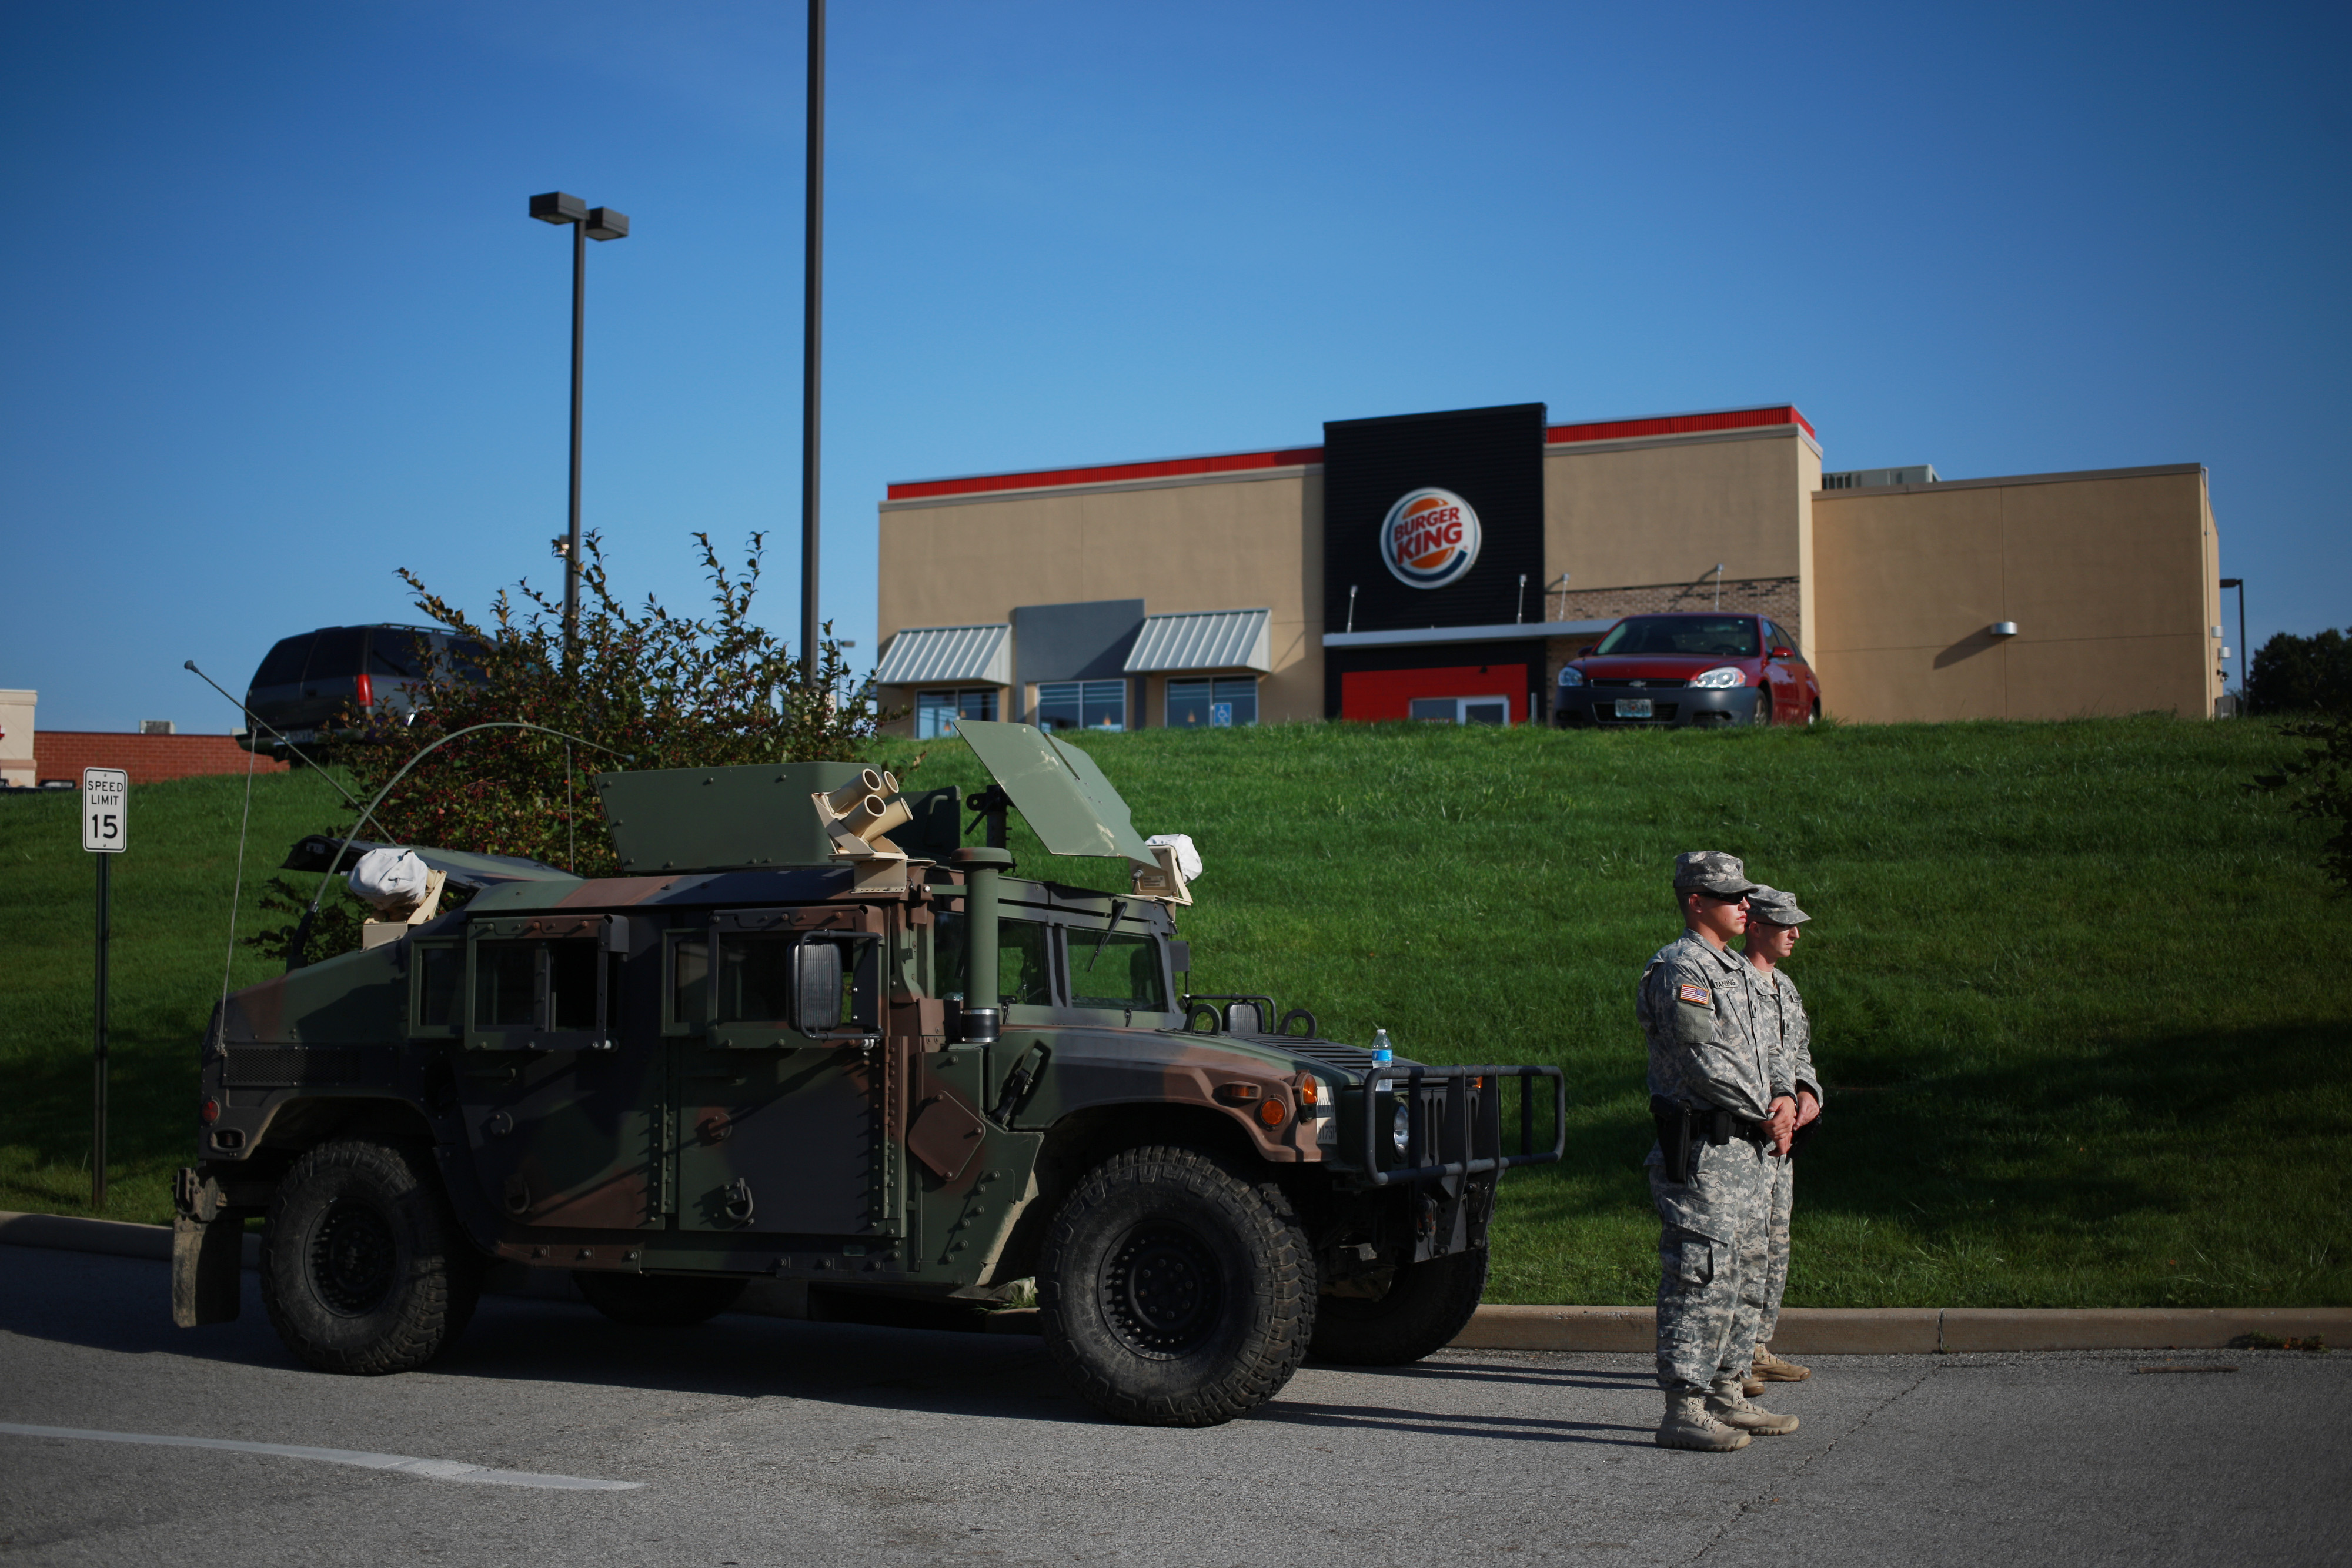 Soldiers from the Missouri National Guard stand in front of their Humvee vehicle outside a Burger King restaurant as they man an entrance to a temporary police command center in Ferguson, Missouri on Aug. 20, 2014.